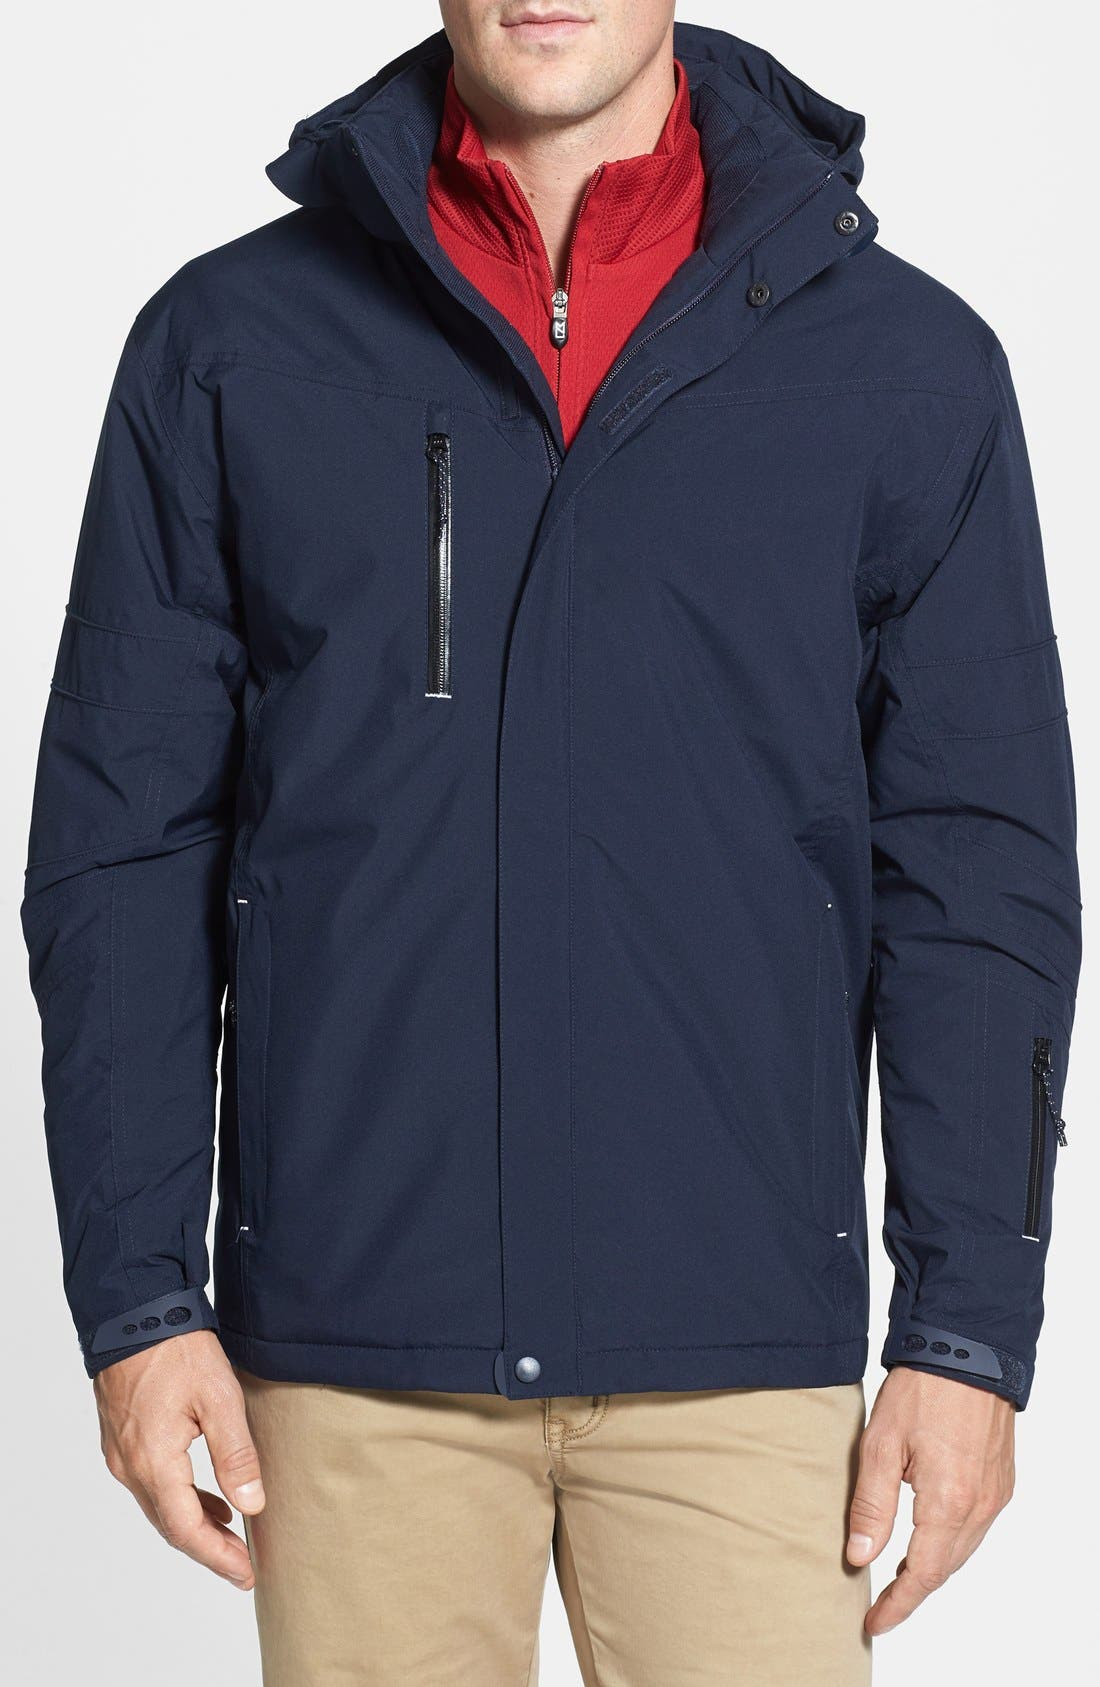 WeatherTec Sanders Jacket,                             Main thumbnail 1, color,